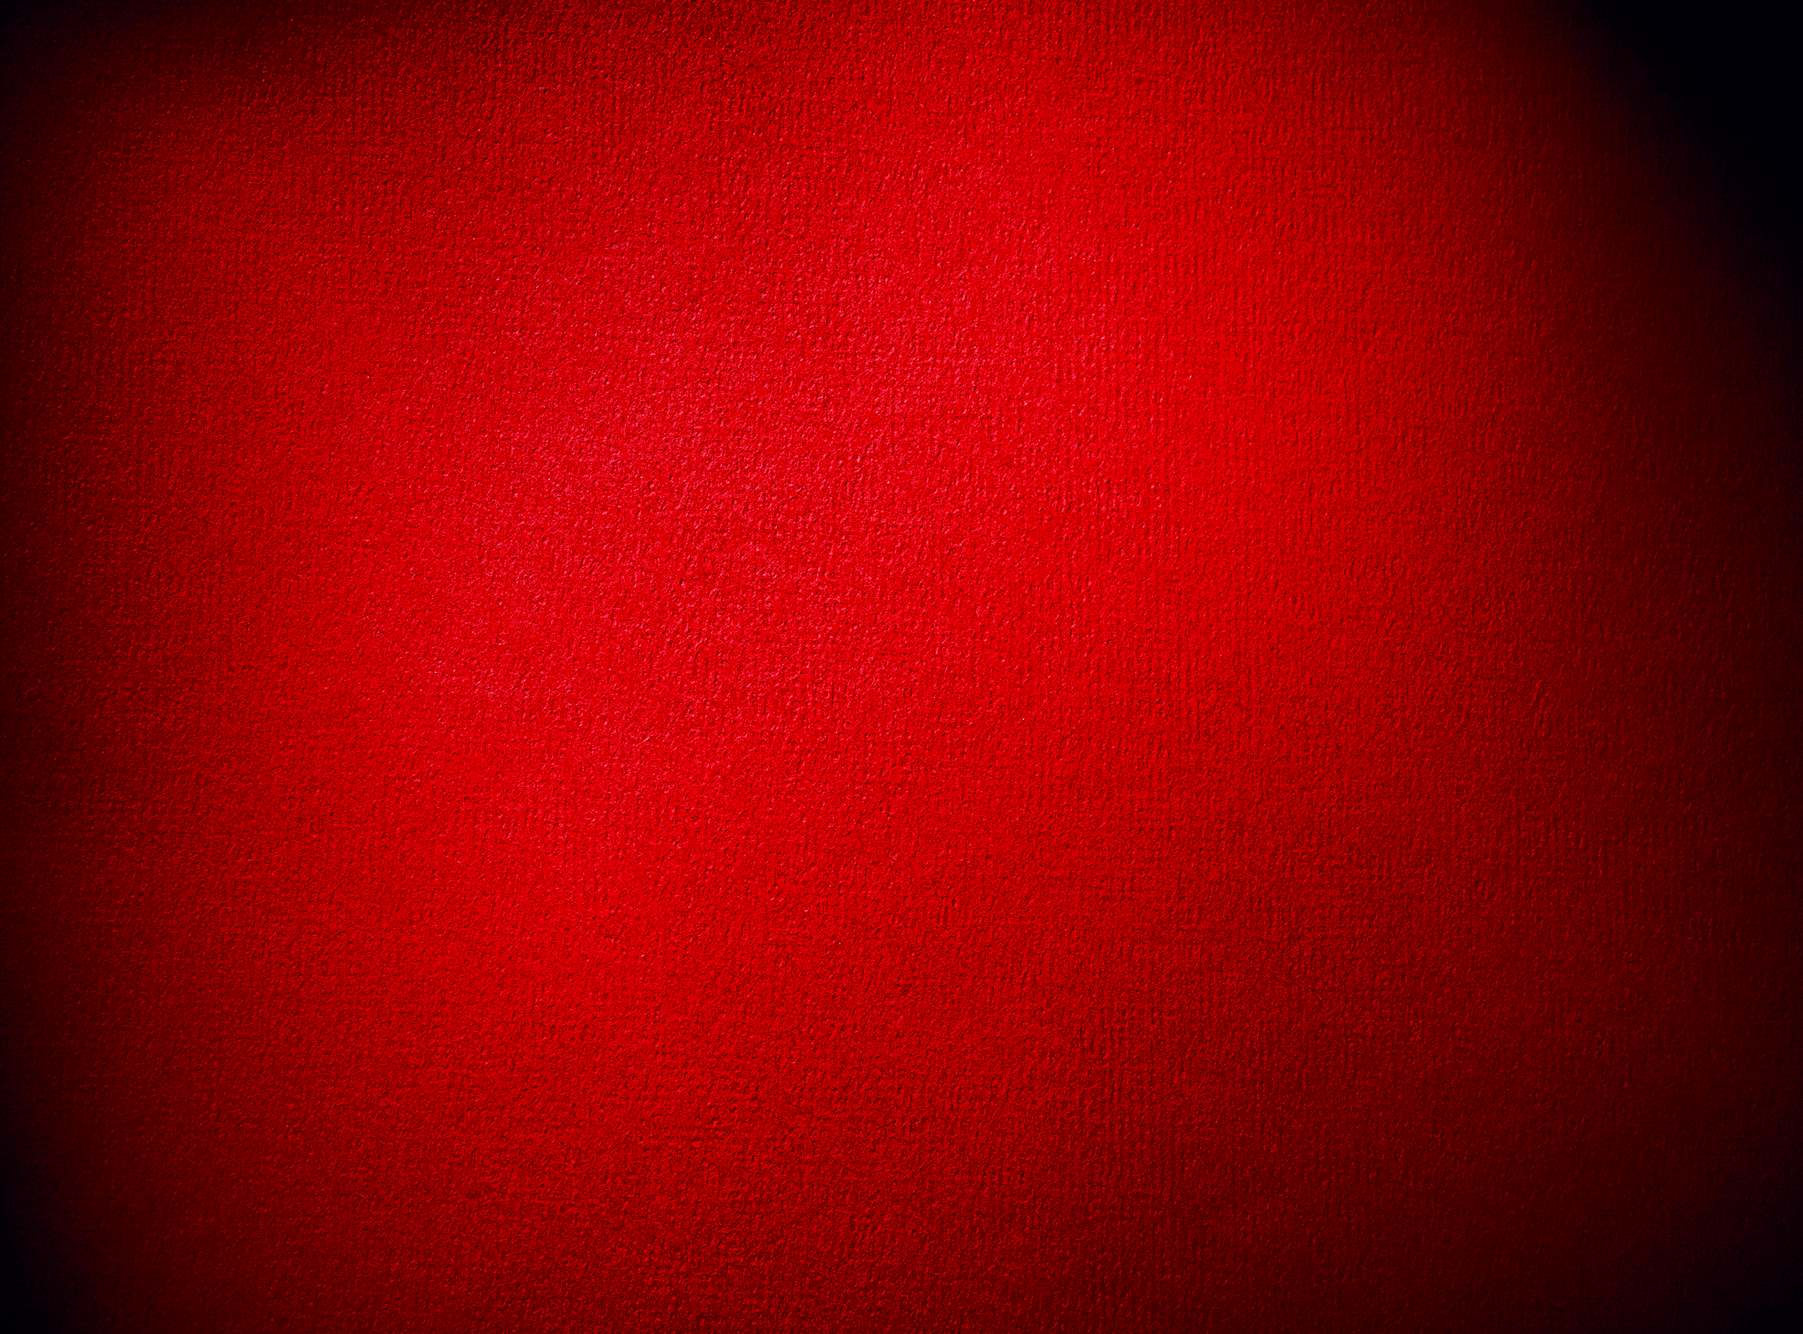 deep red paper background texture photohdx